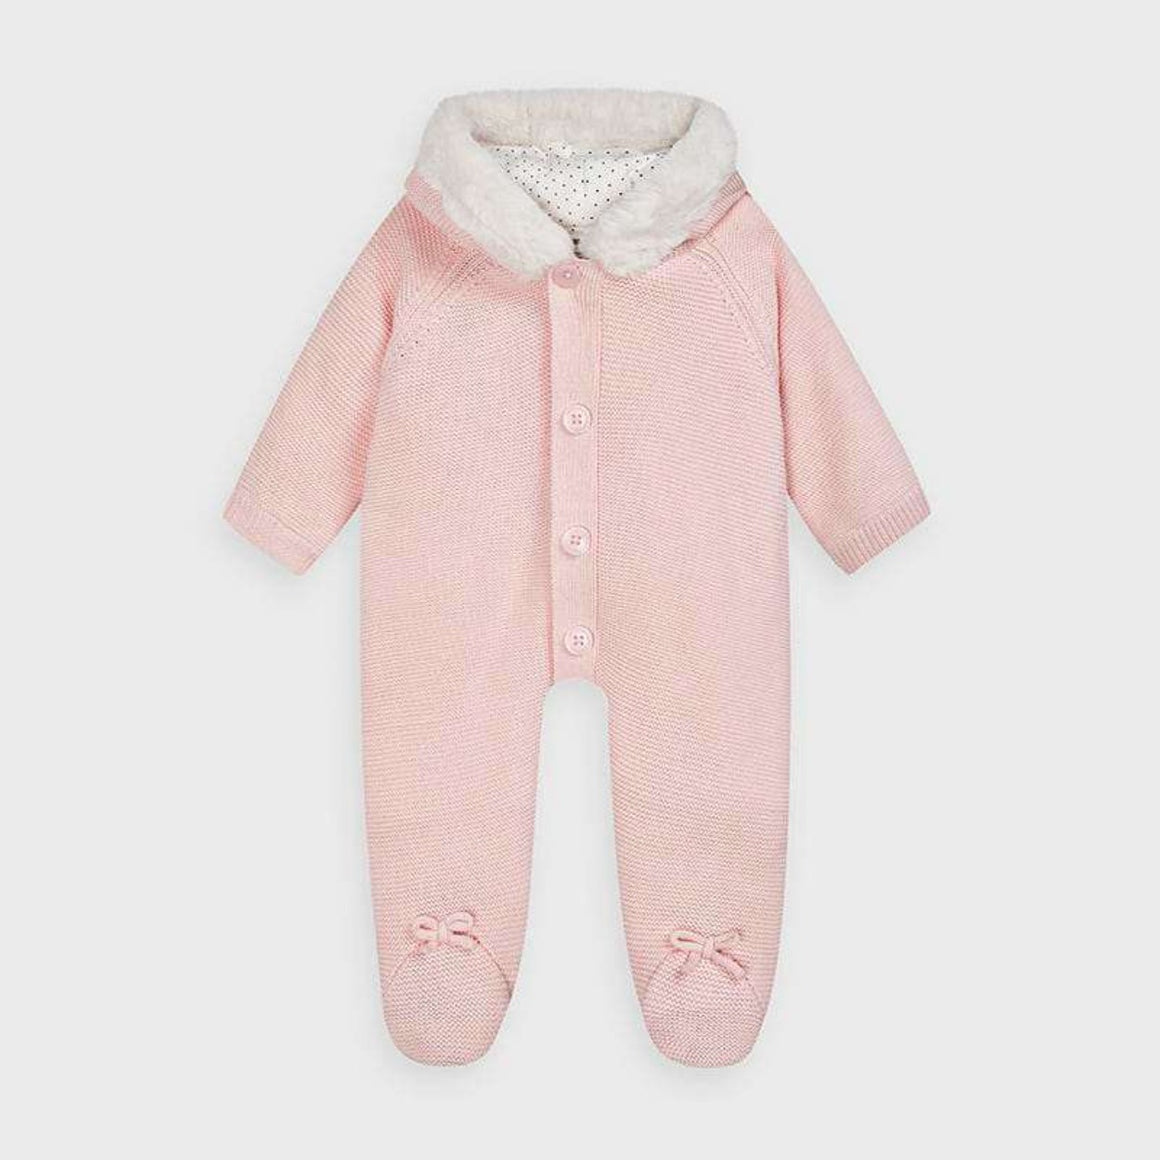 Fur-Lined Knit Snowsuit in Pink